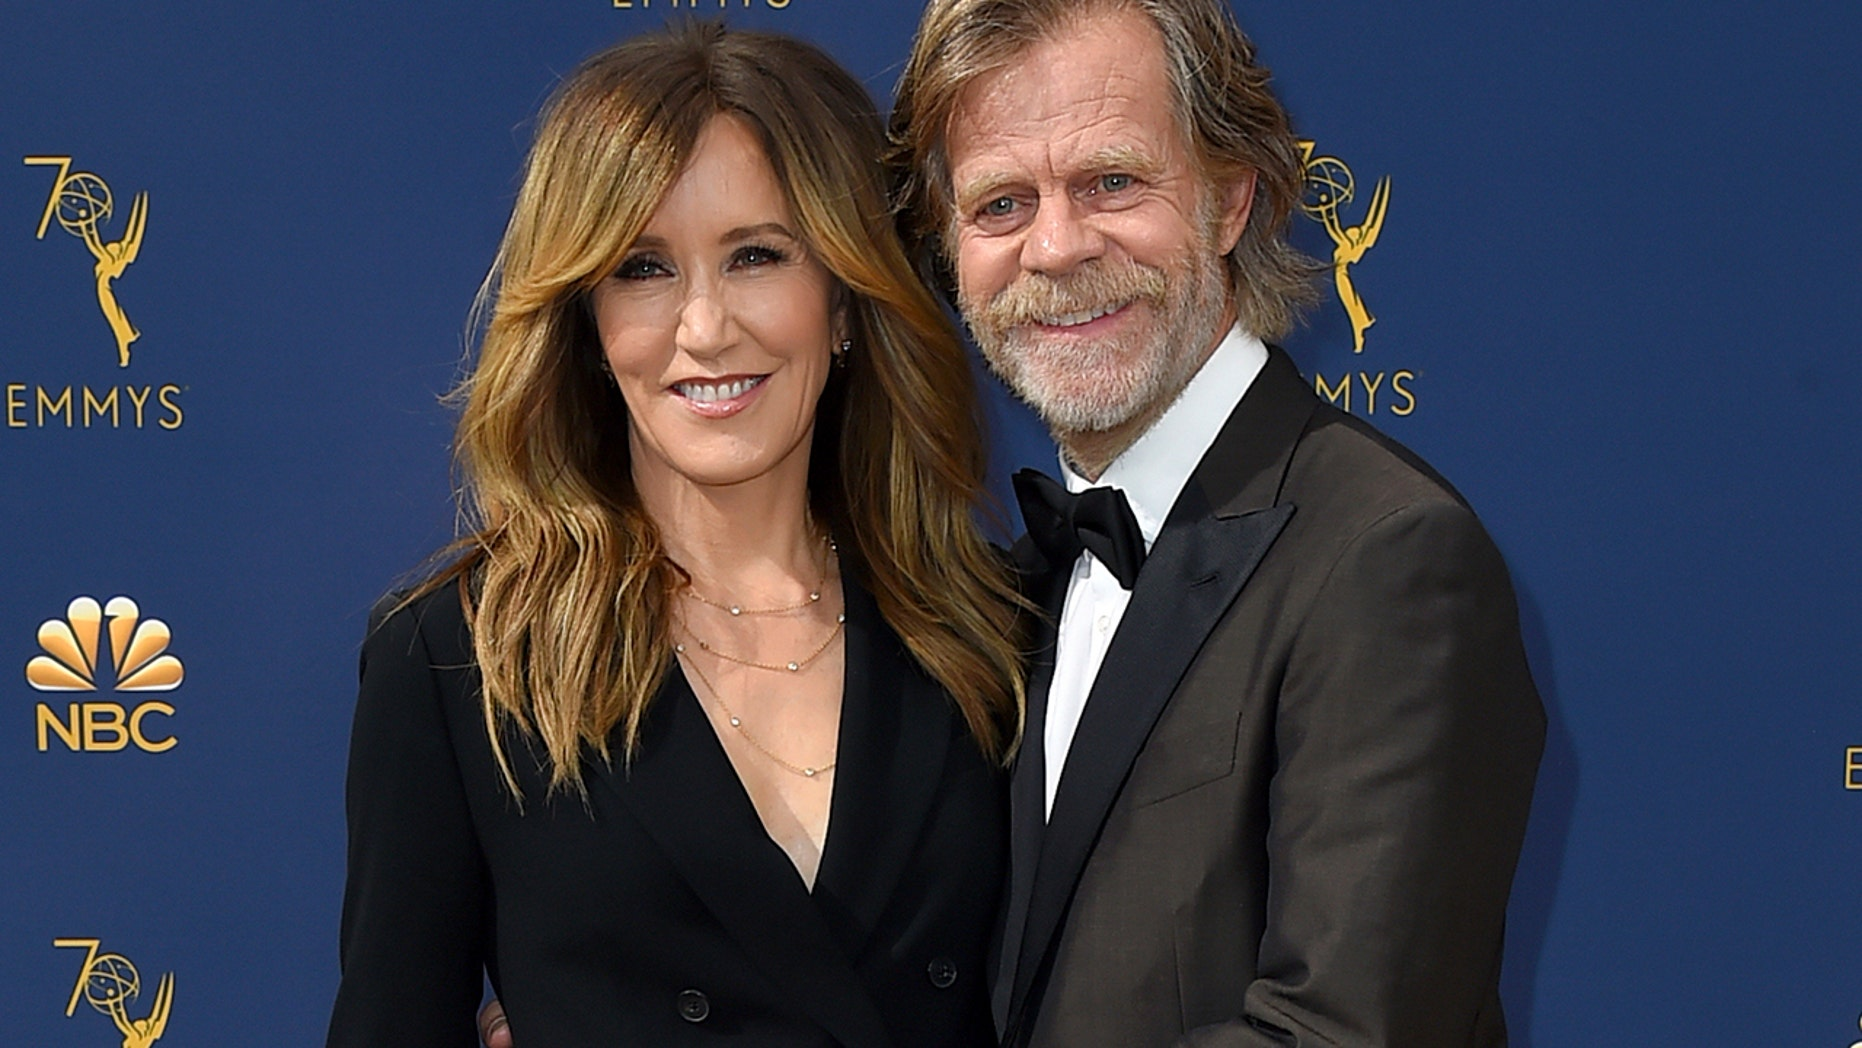 """Shameless"" actor William H. Macy turned 69 Wednesday, only one day after his wife Felicity Huffman was charged for her alleged role in a nationwide college admissions scam."